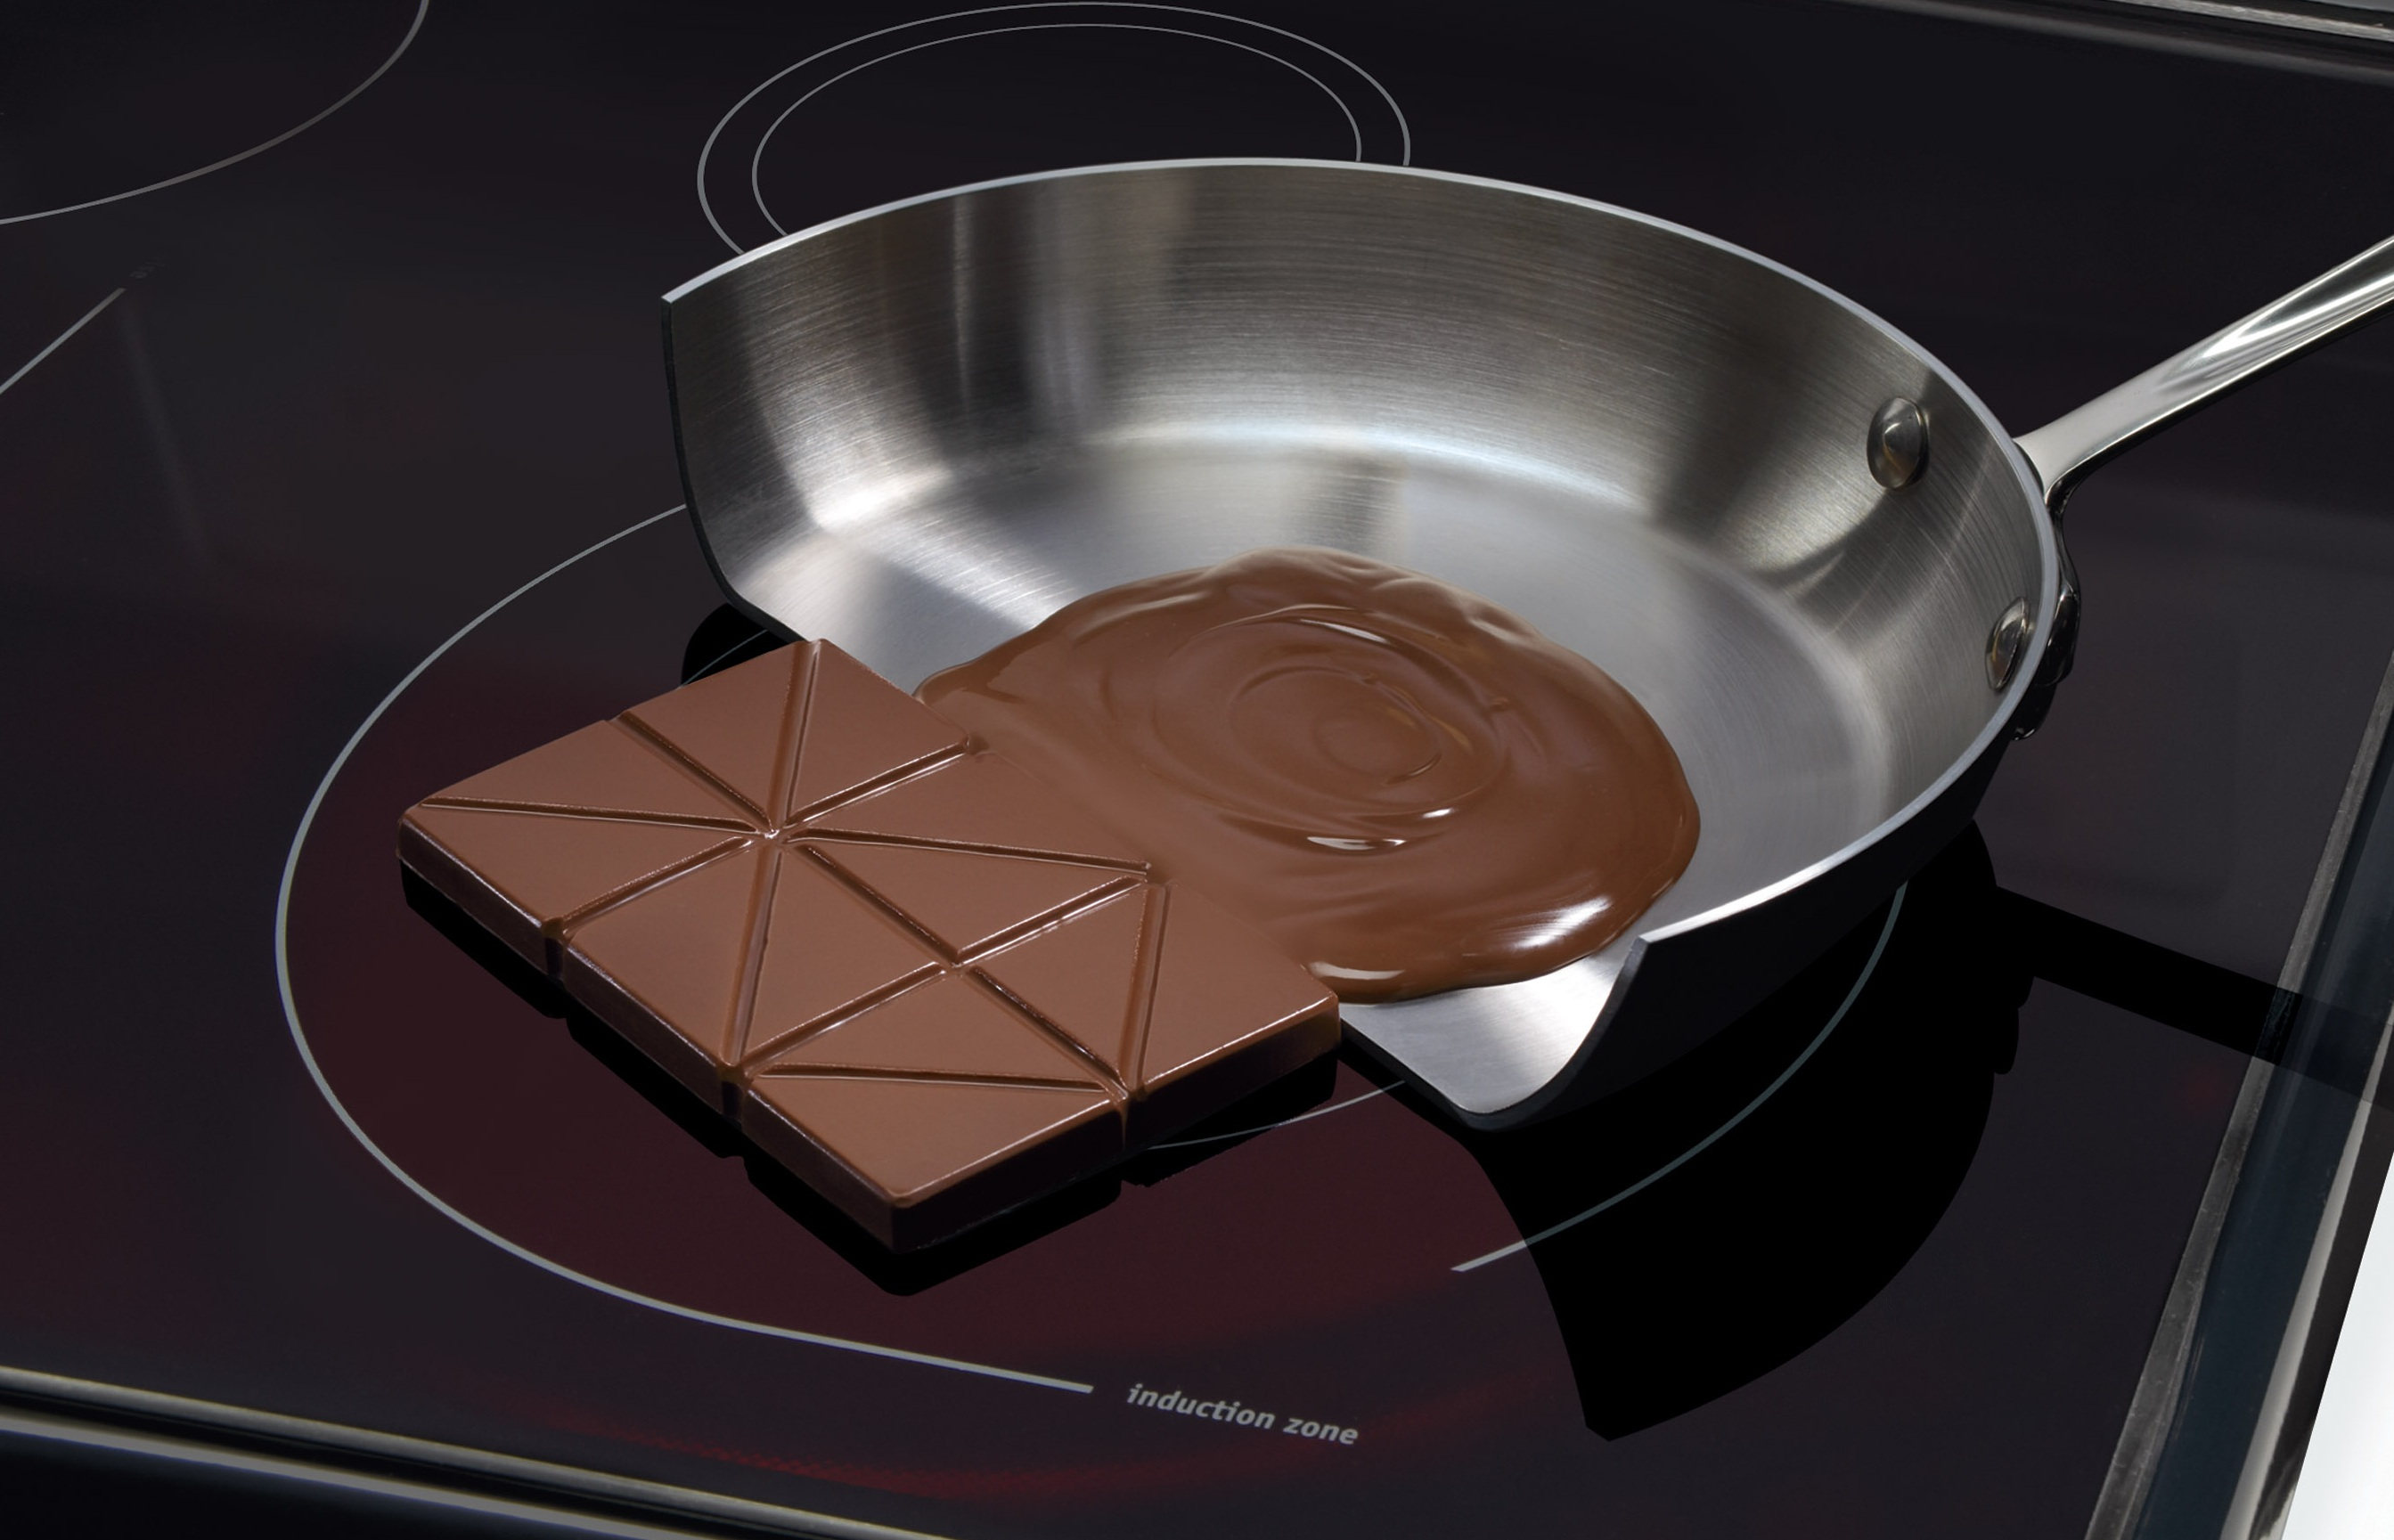 Induction cooking recipes appliances online blog for Plaque induction que choisir